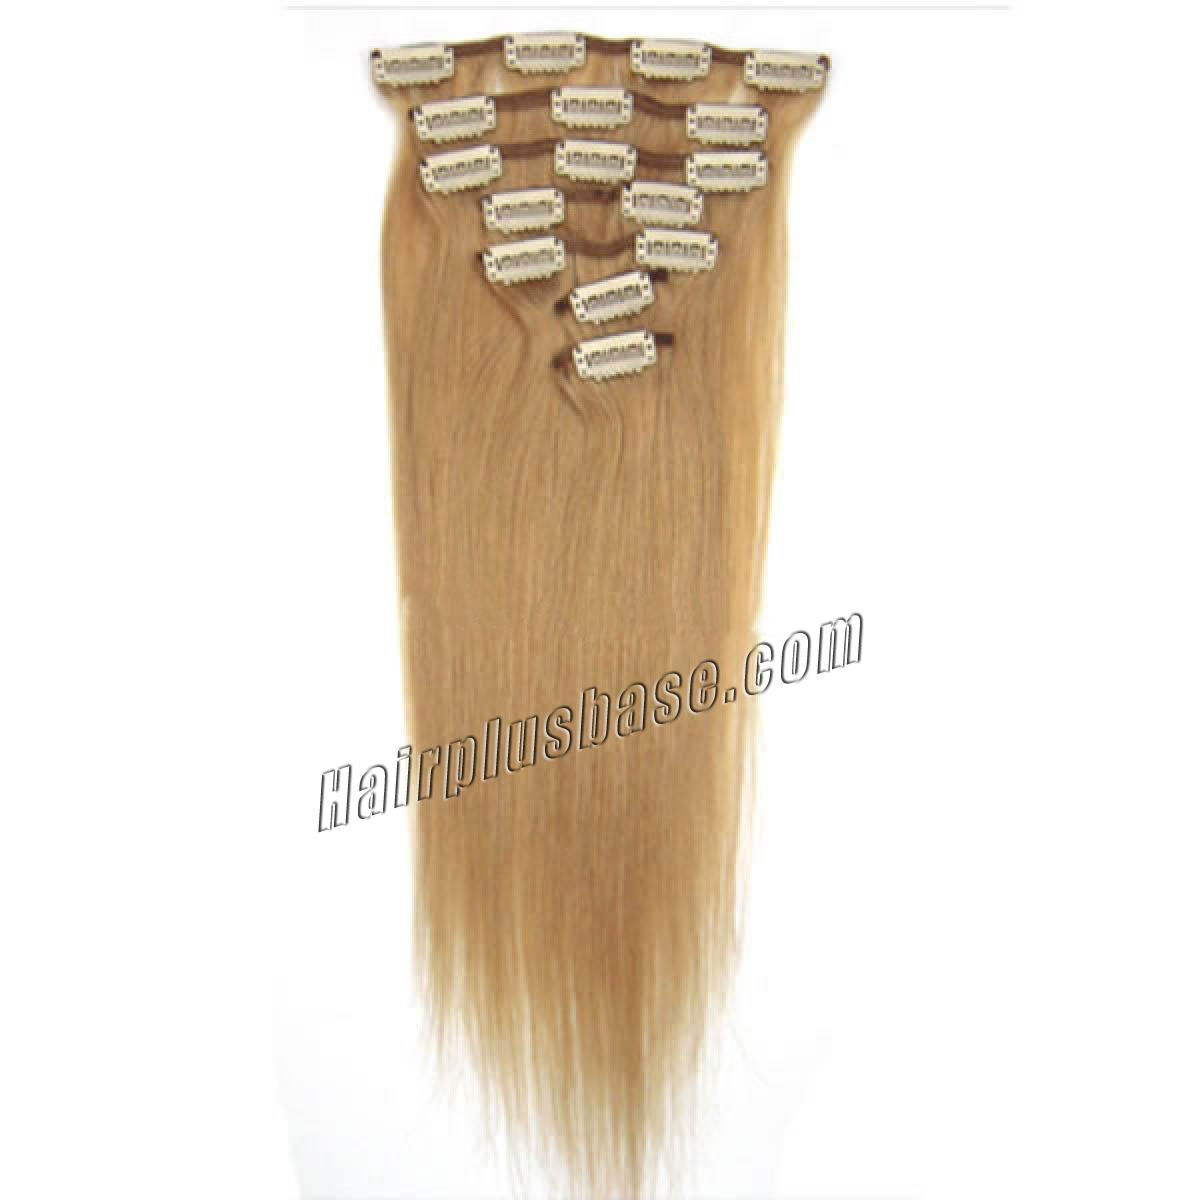 28 Inch #27 Strawberry Blonde Clip In Human Hair Extensions 11pcs no 2